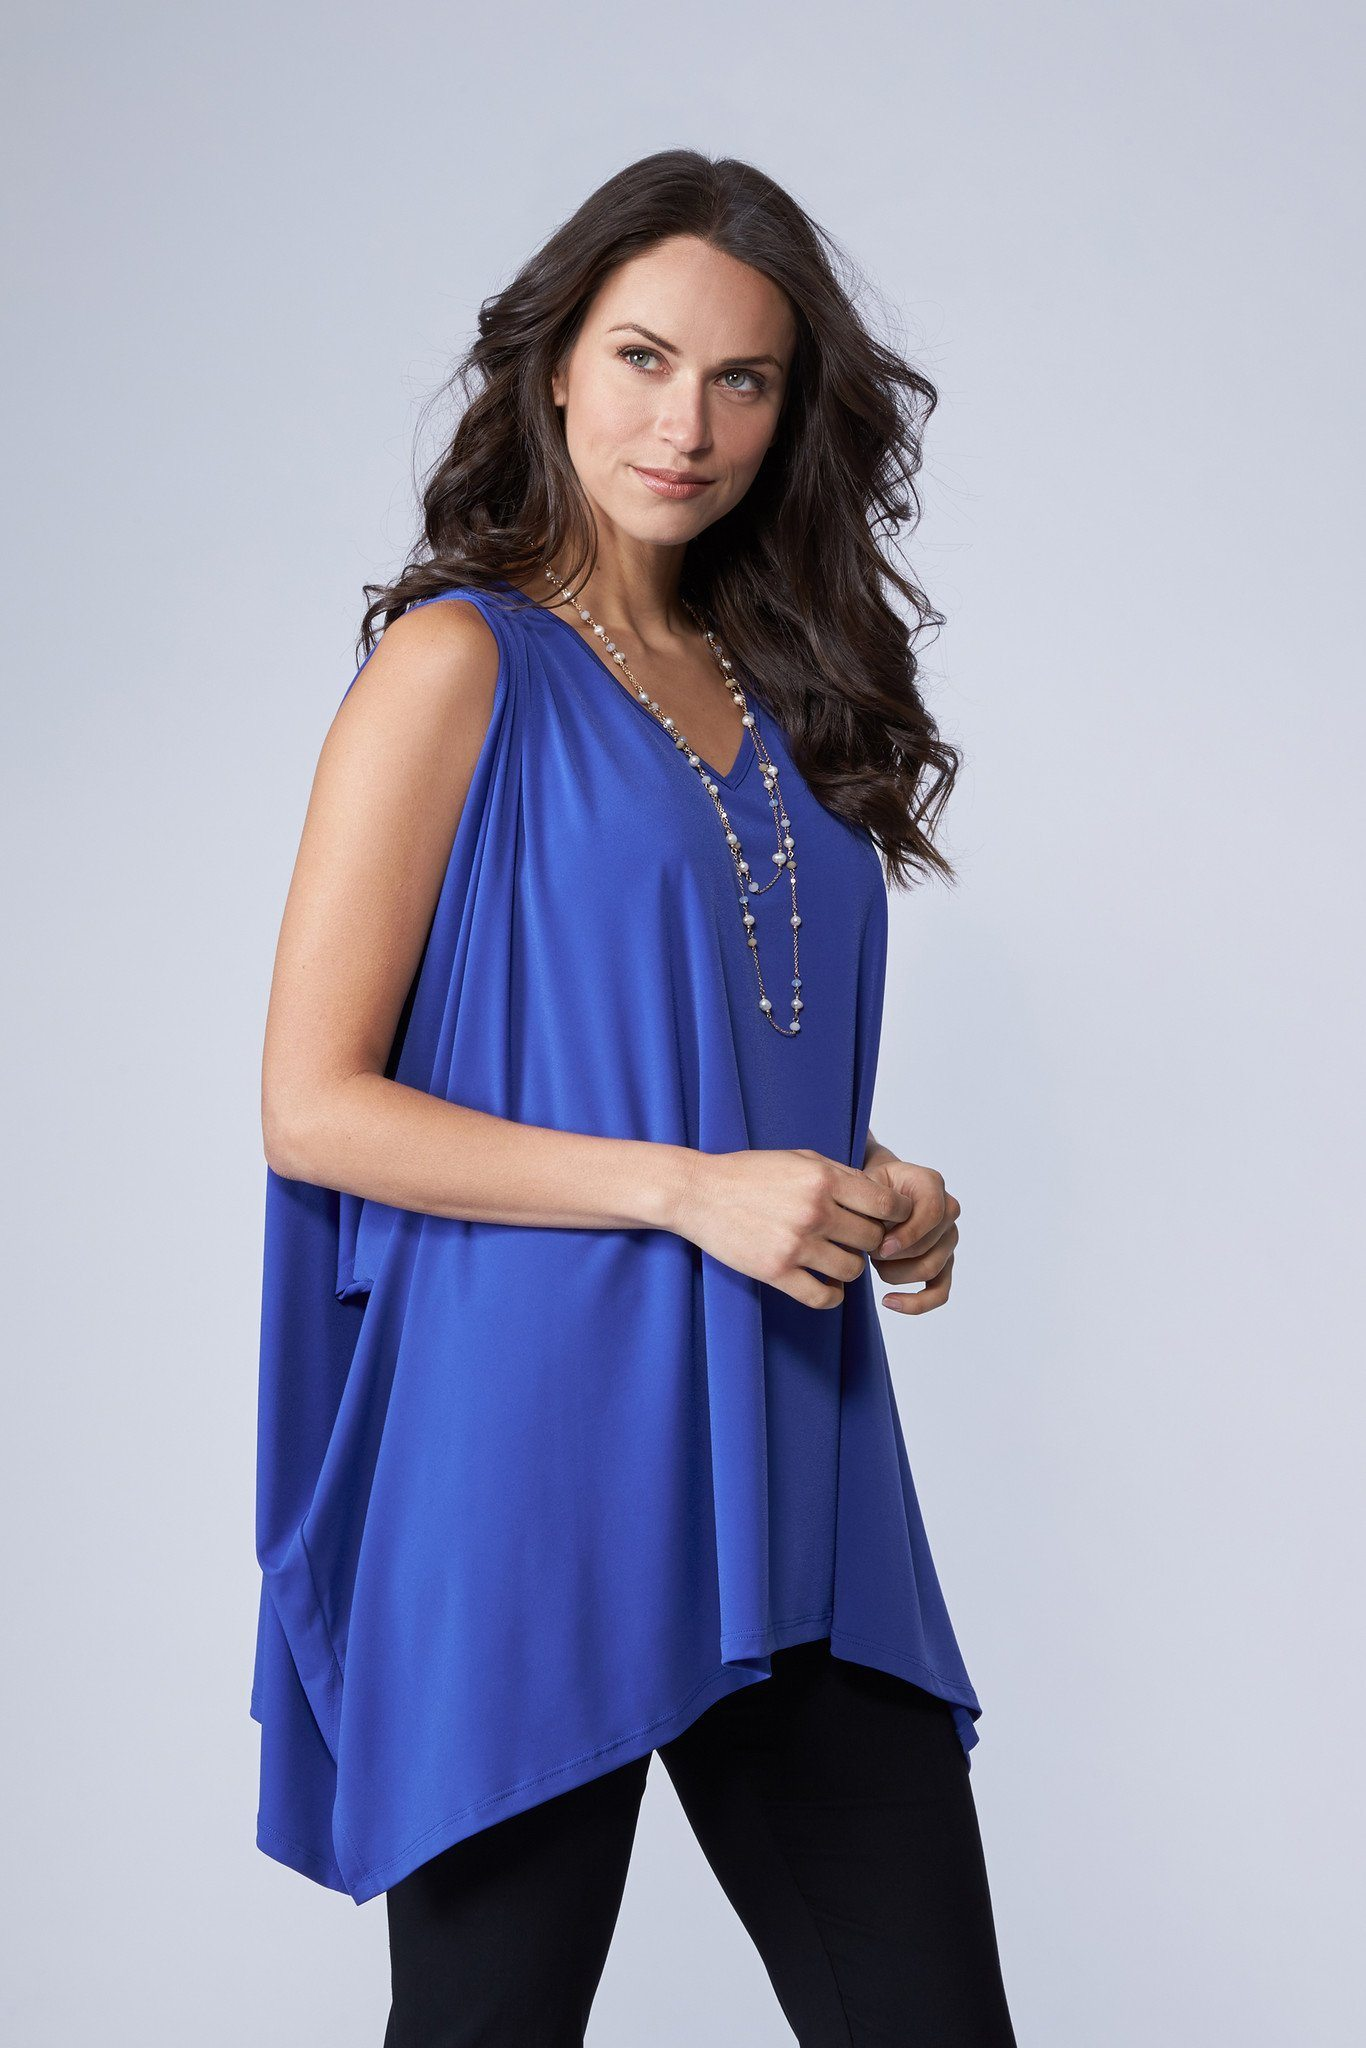 Hot Flash | Hot flashes, Tunic tops, Latest tops